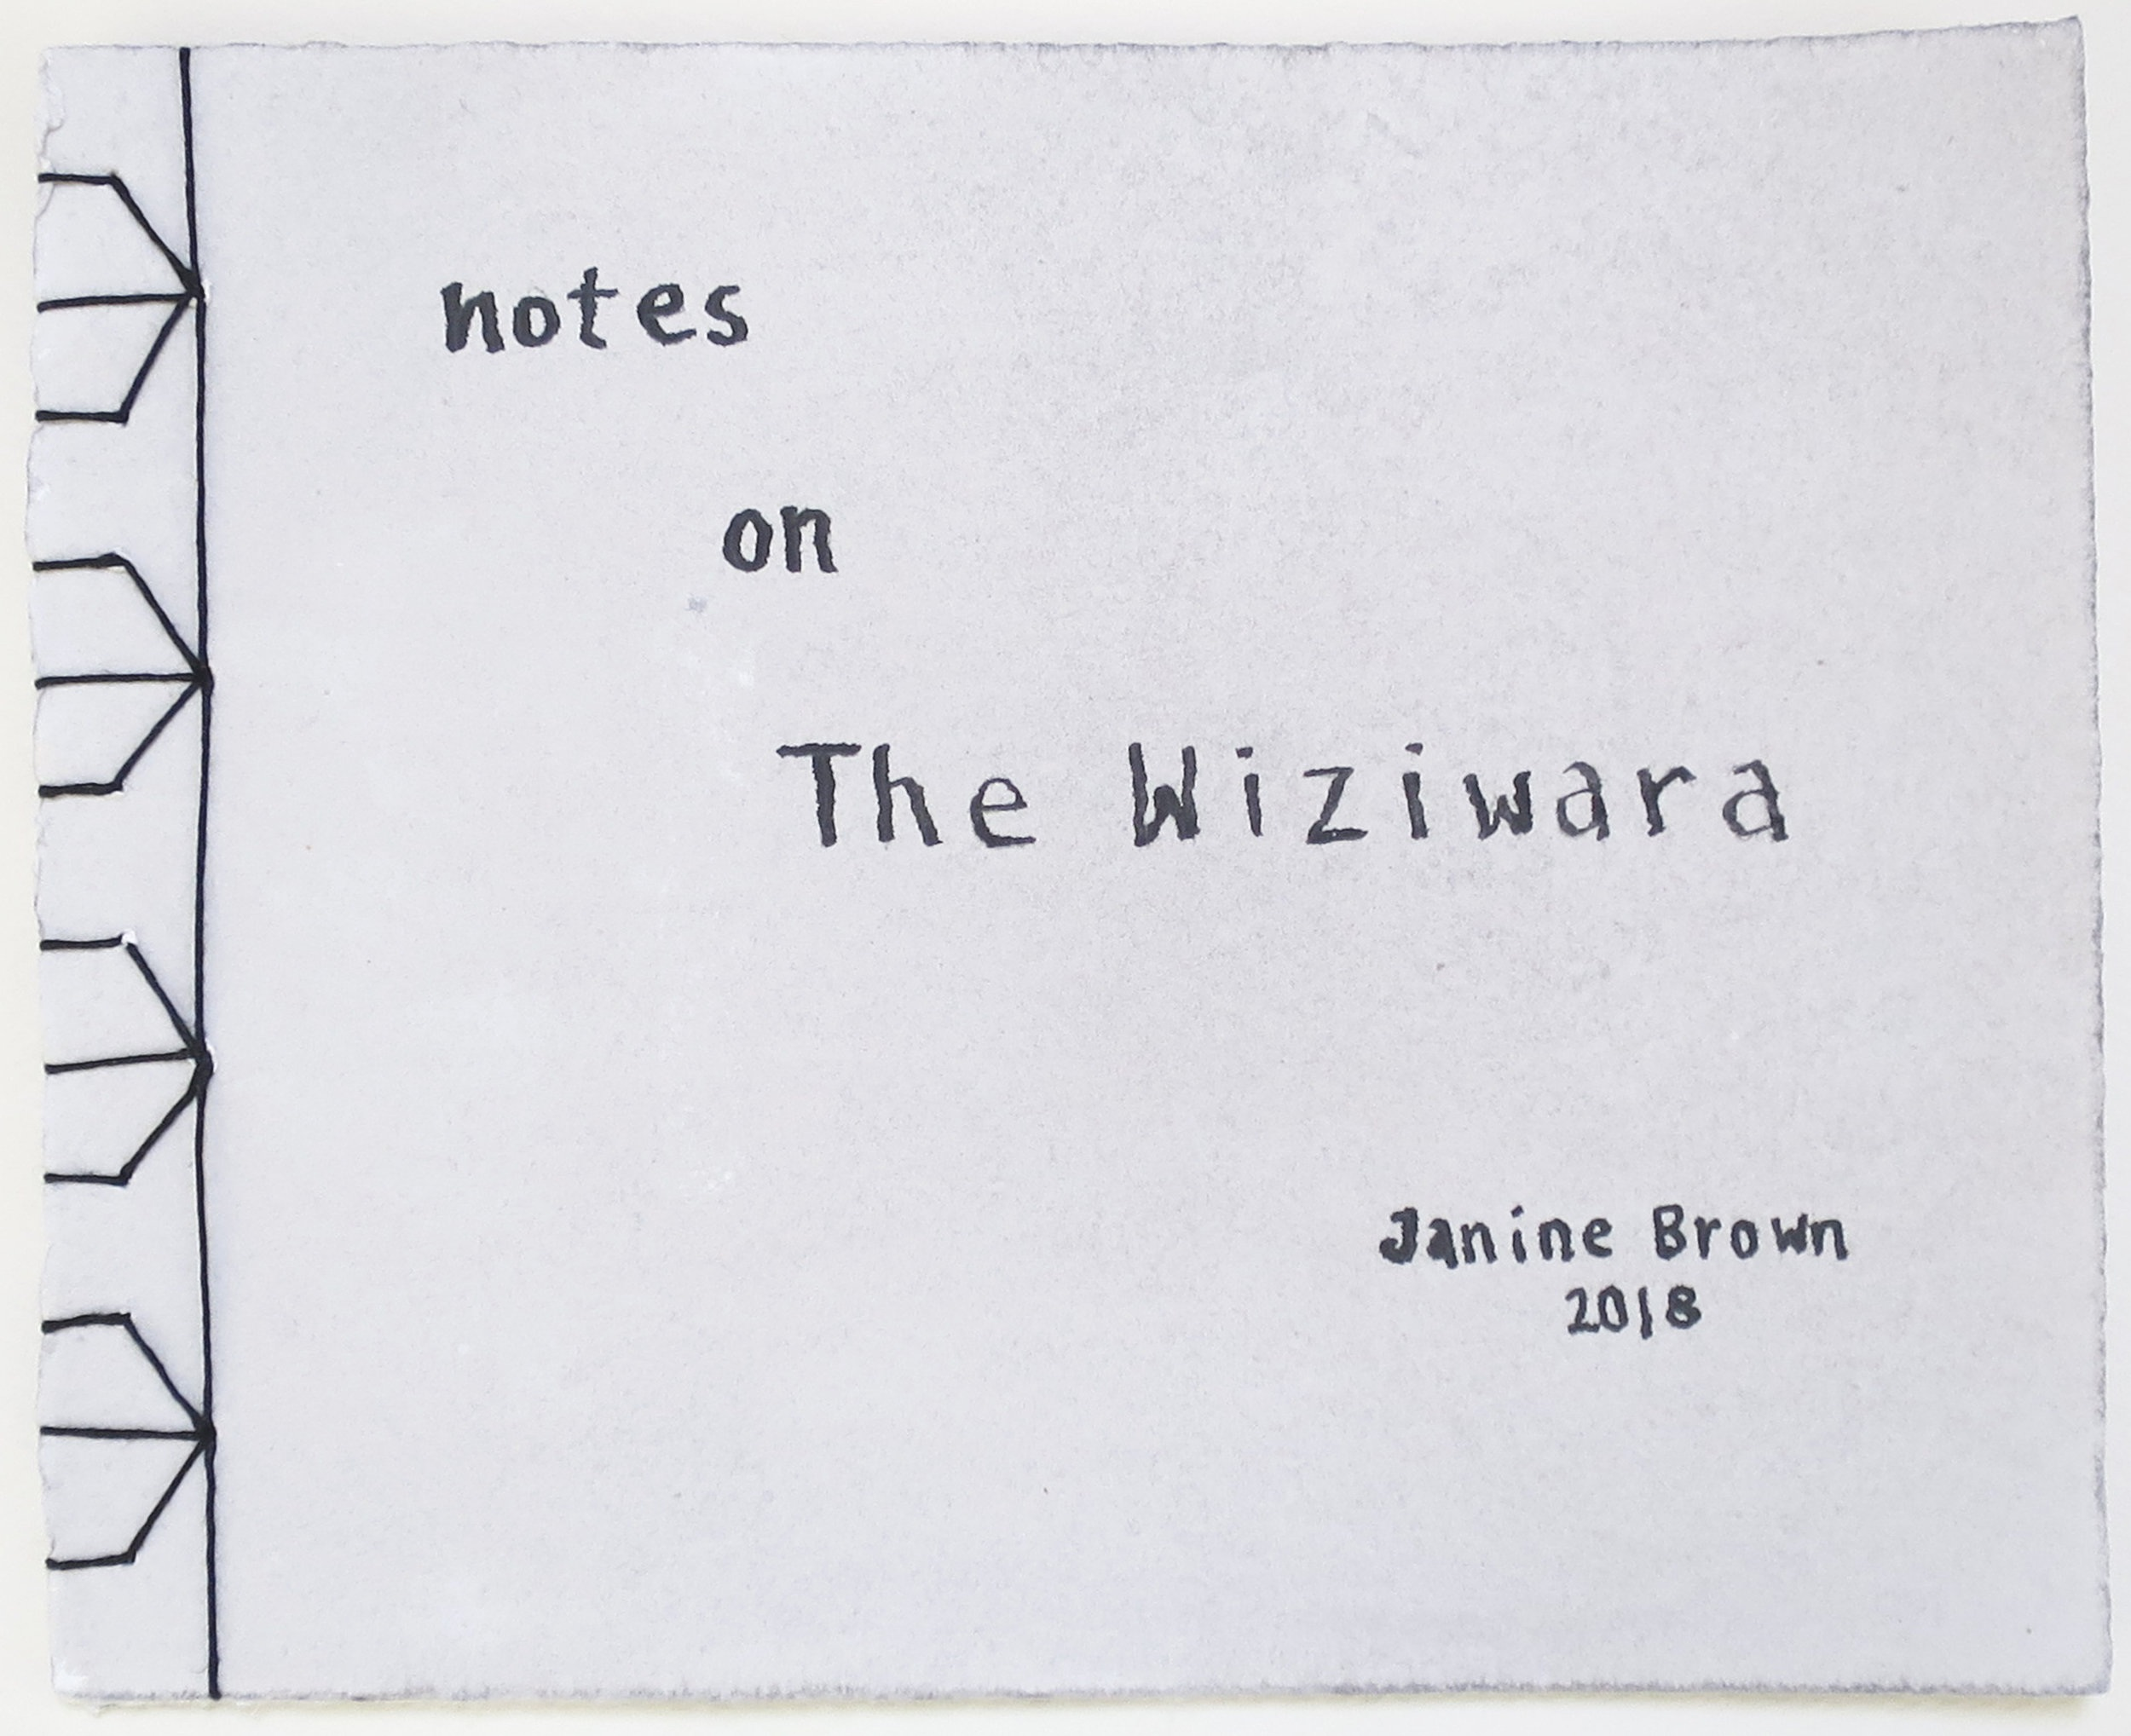 notes on The Wiziwara